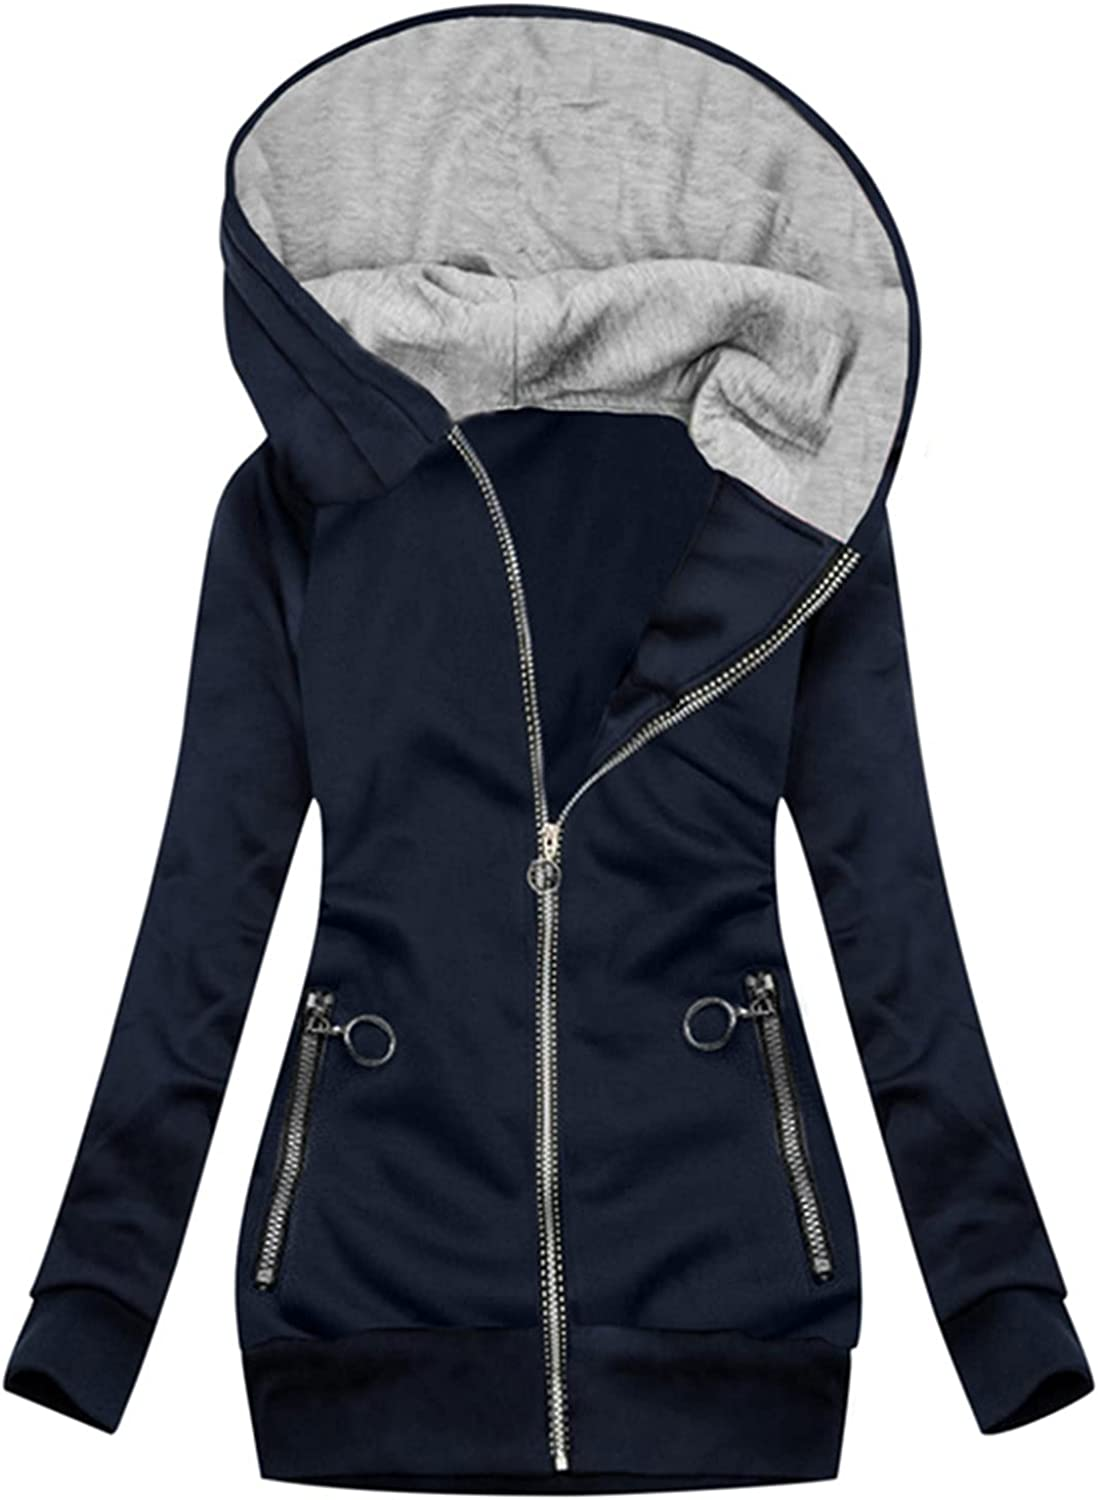 Quilted Jackets for Women,Women's Large Printed Hooded Zipper Tops Autumn Pockets Long-Sleeve Blouse Ladies Slim Long Coats